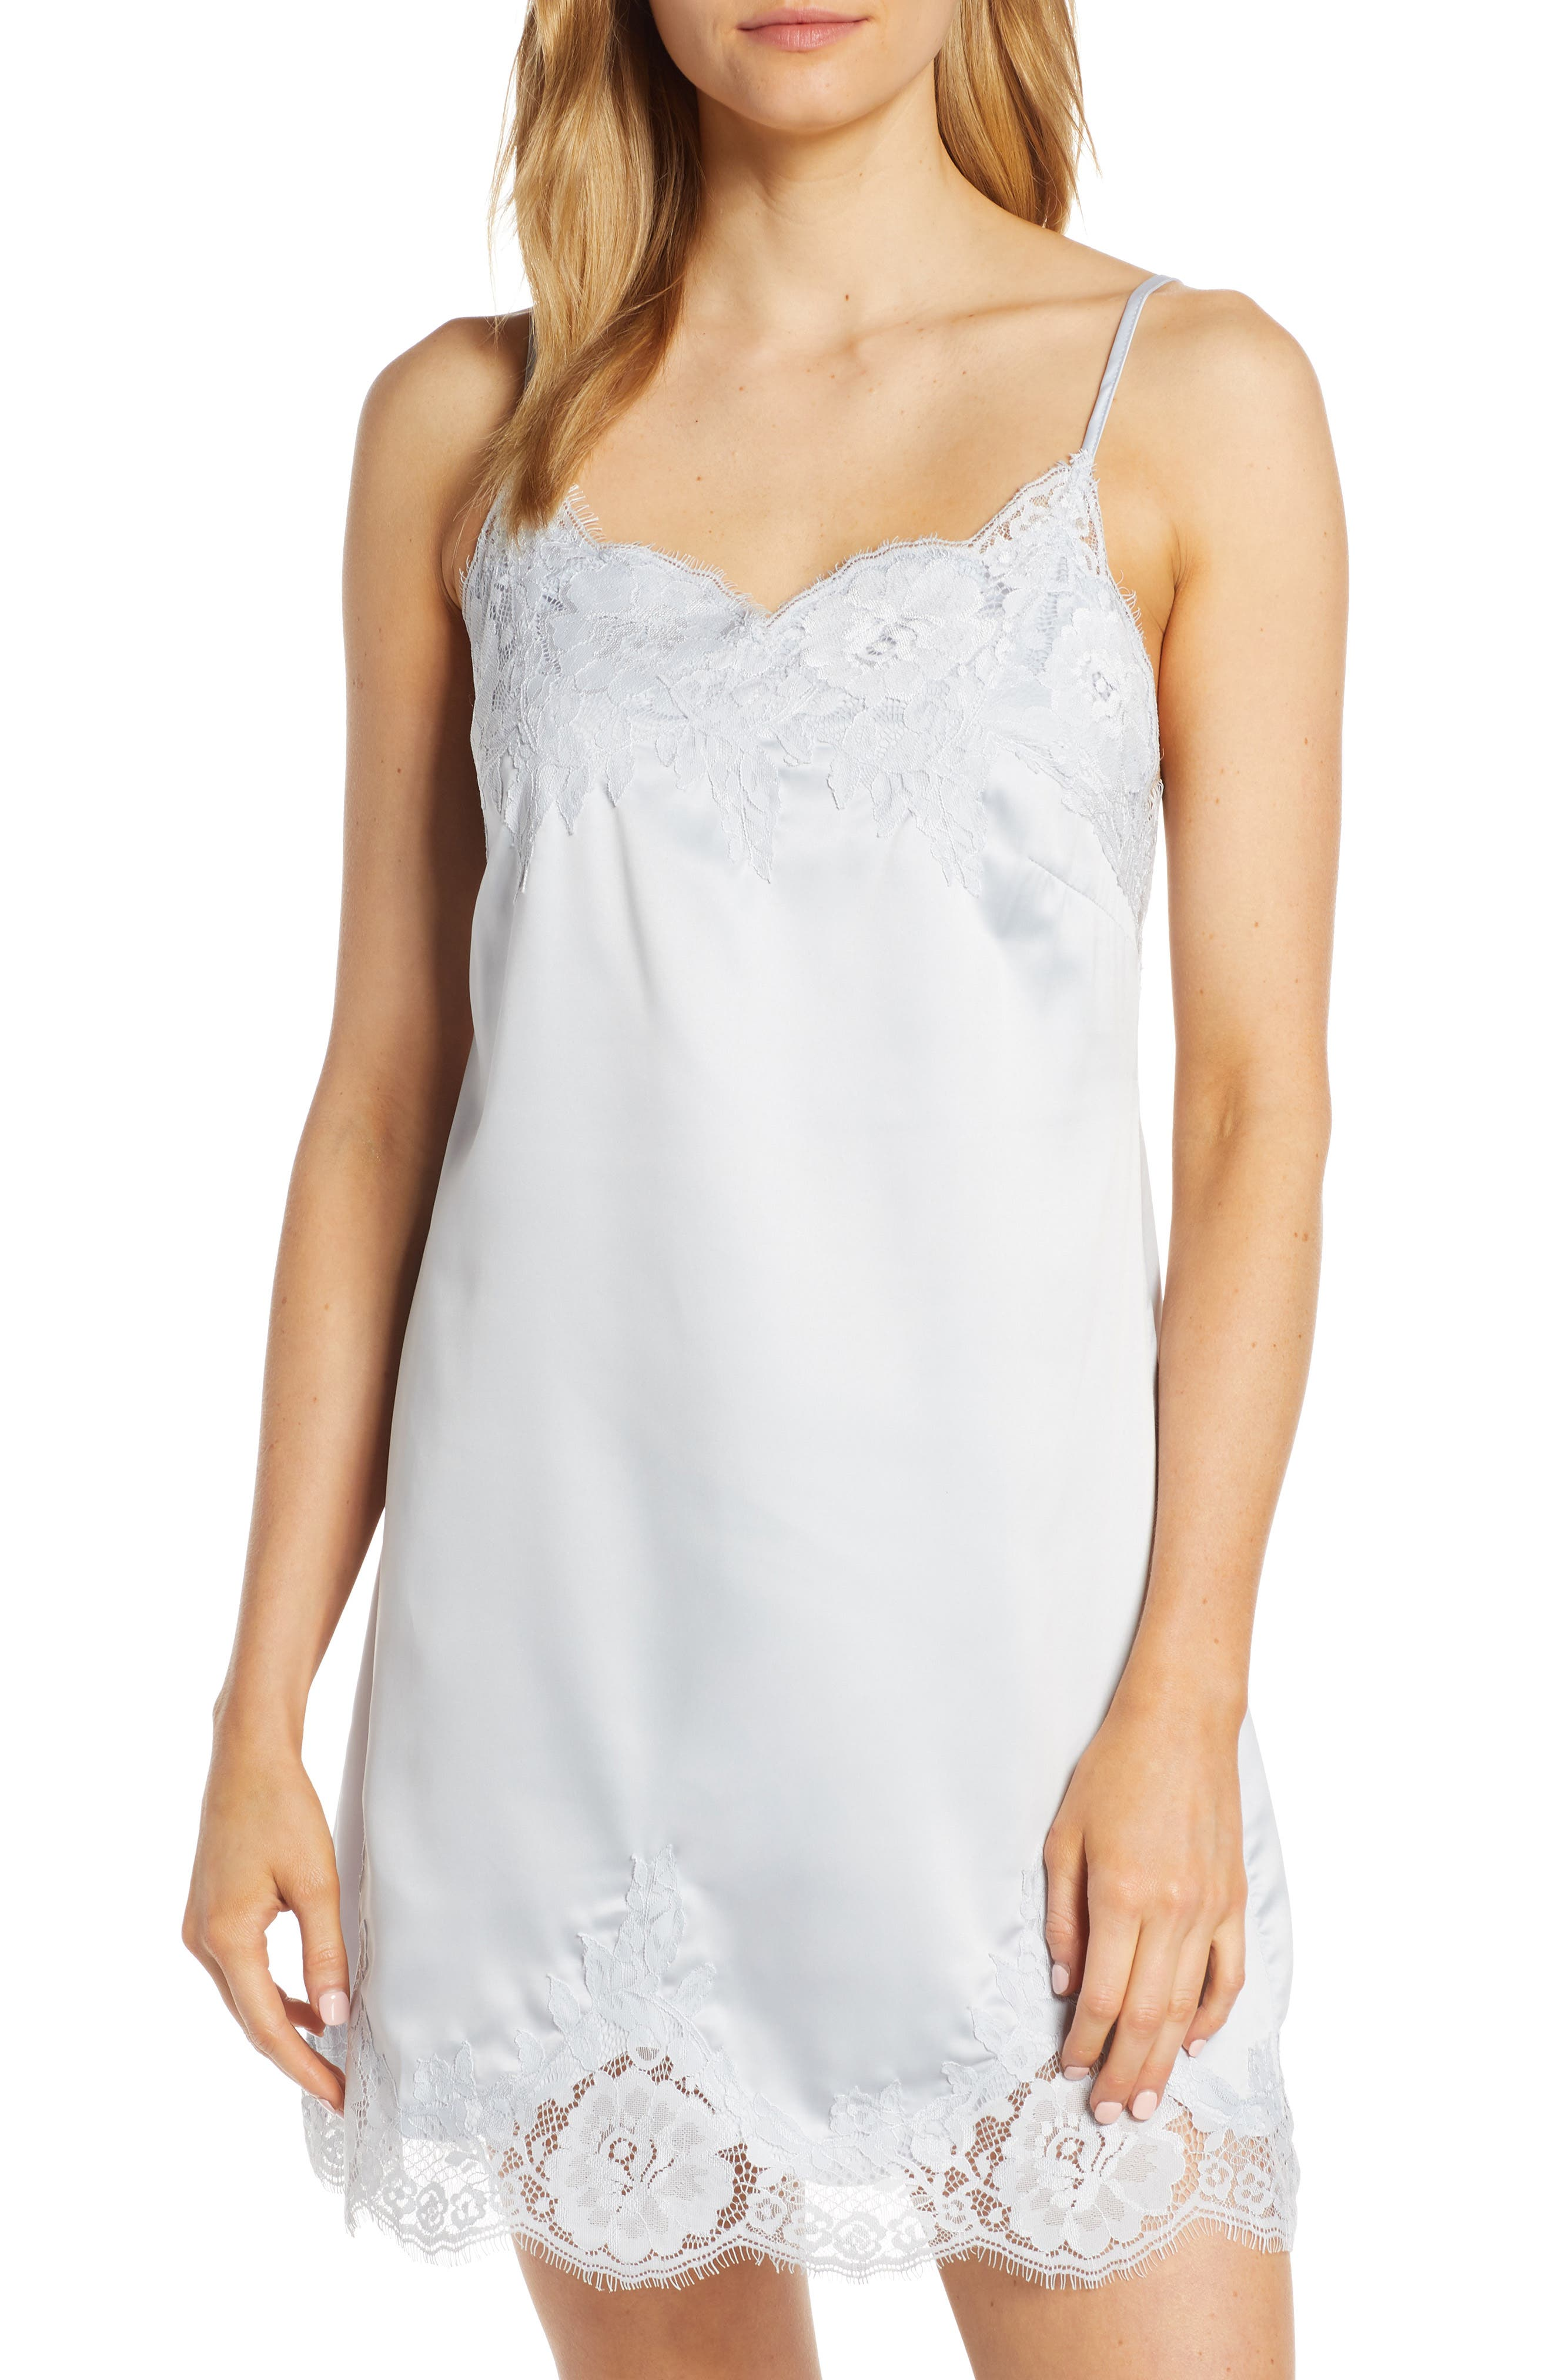 1920s Style Underwear, Lingerie, Nightgowns, Pajamas Womens Homebodii Olivia Lace Trim Chemise $47.96 AT vintagedancer.com